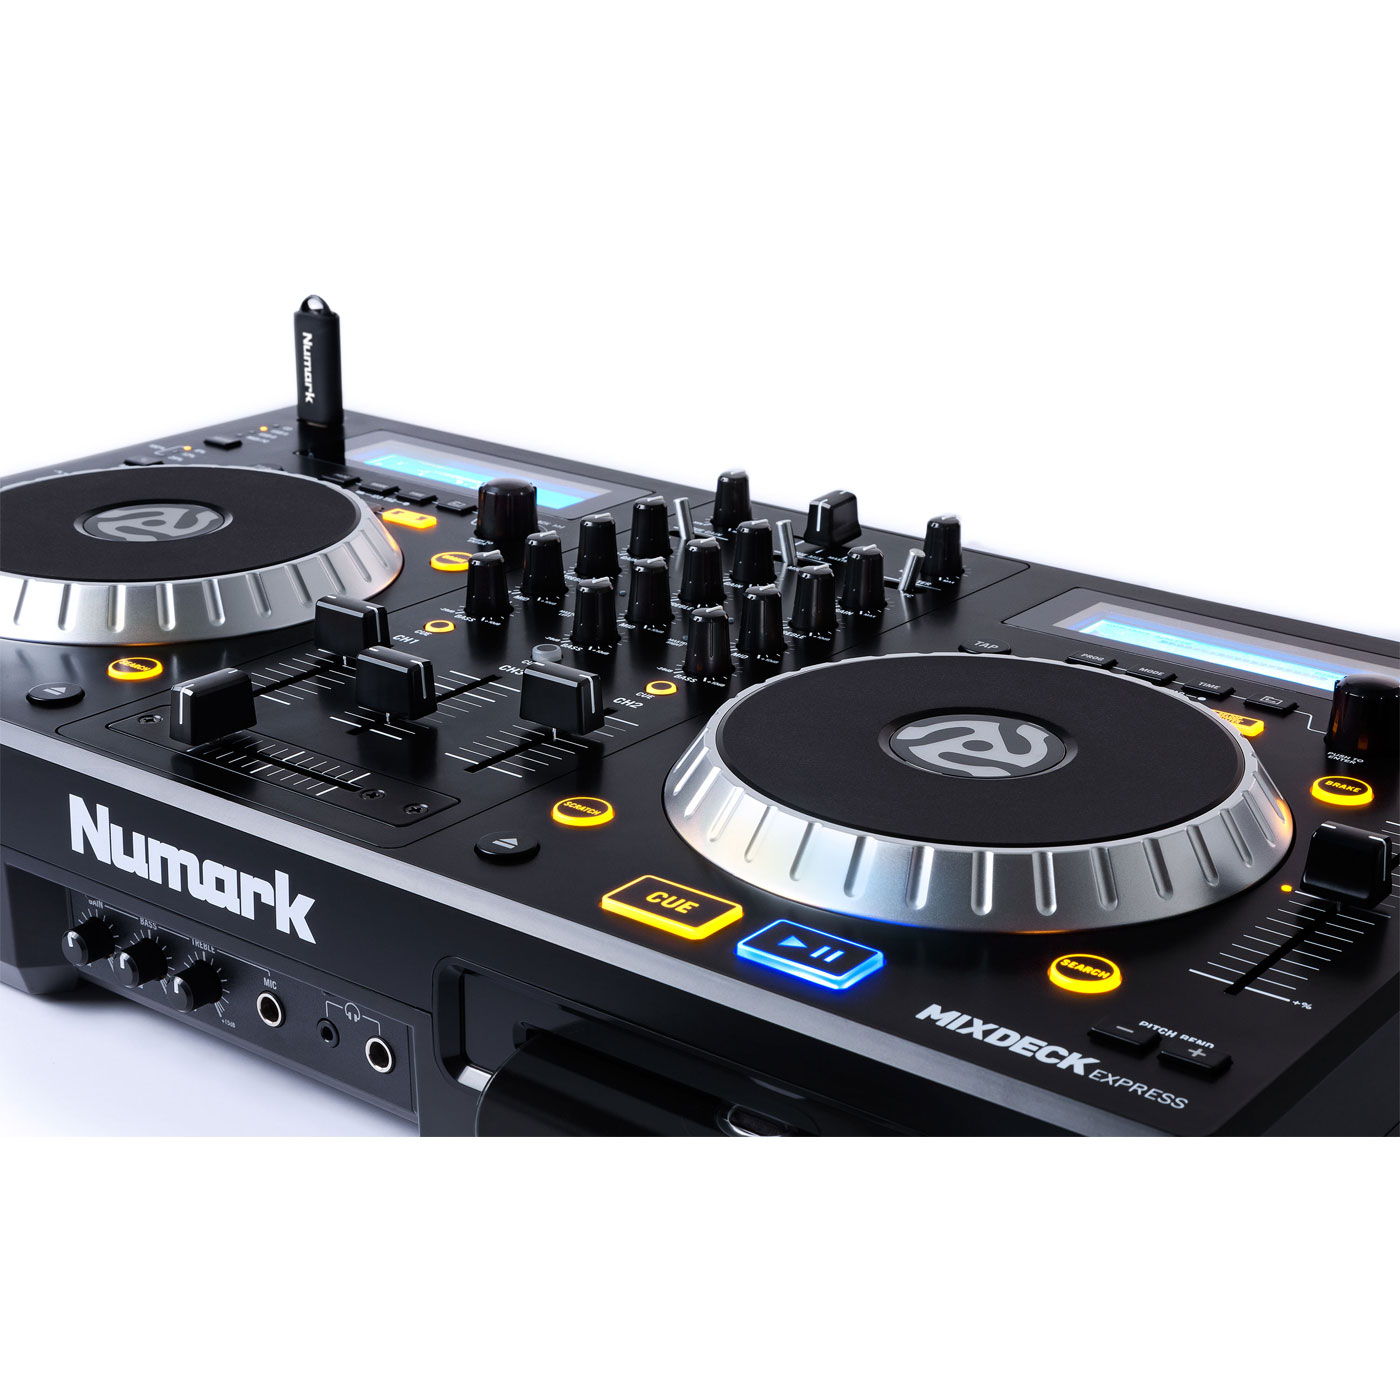 numark mixdeck express table de mixage numark sur. Black Bedroom Furniture Sets. Home Design Ideas